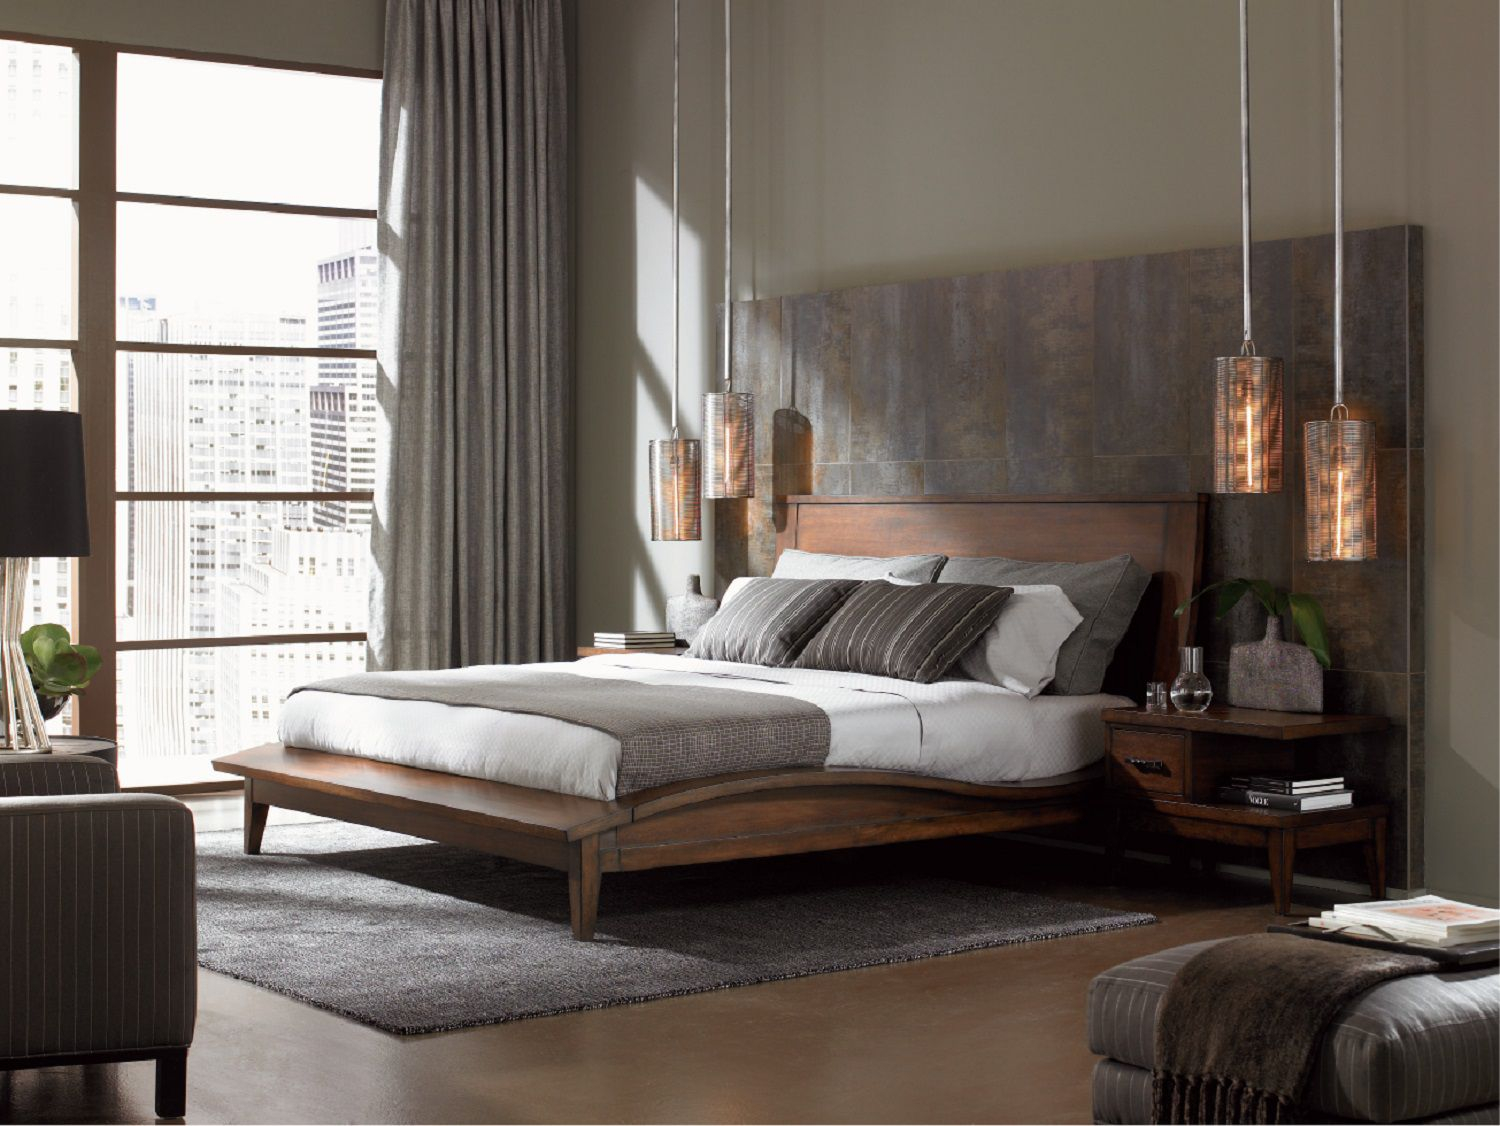 25 Tips And Photos For Decorating A Modern Master Bedroom with Modern Bedroom Bedding